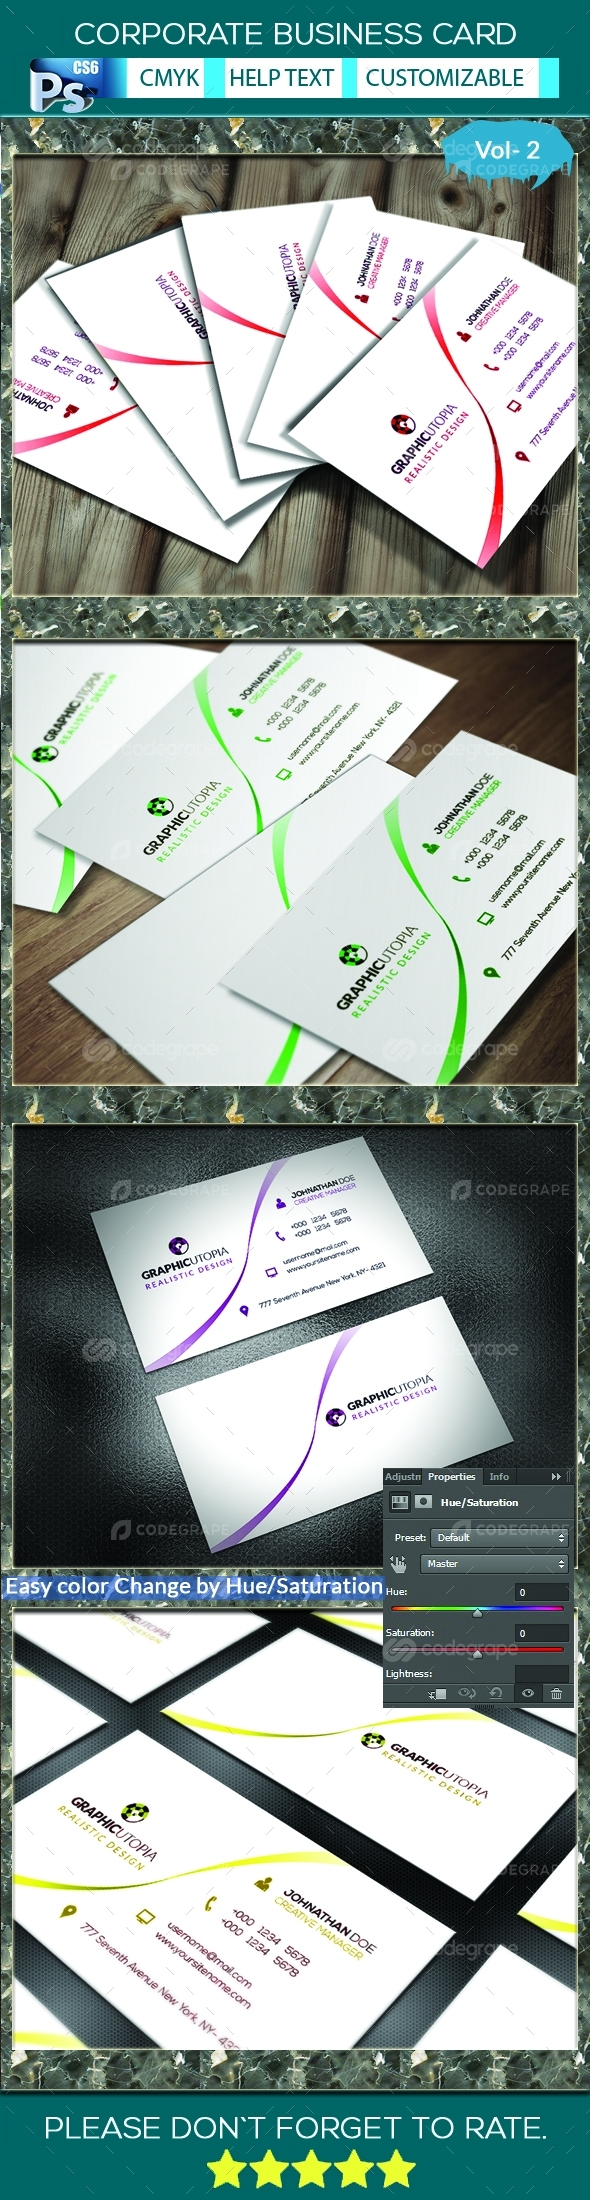 Corporate Business Card V.2